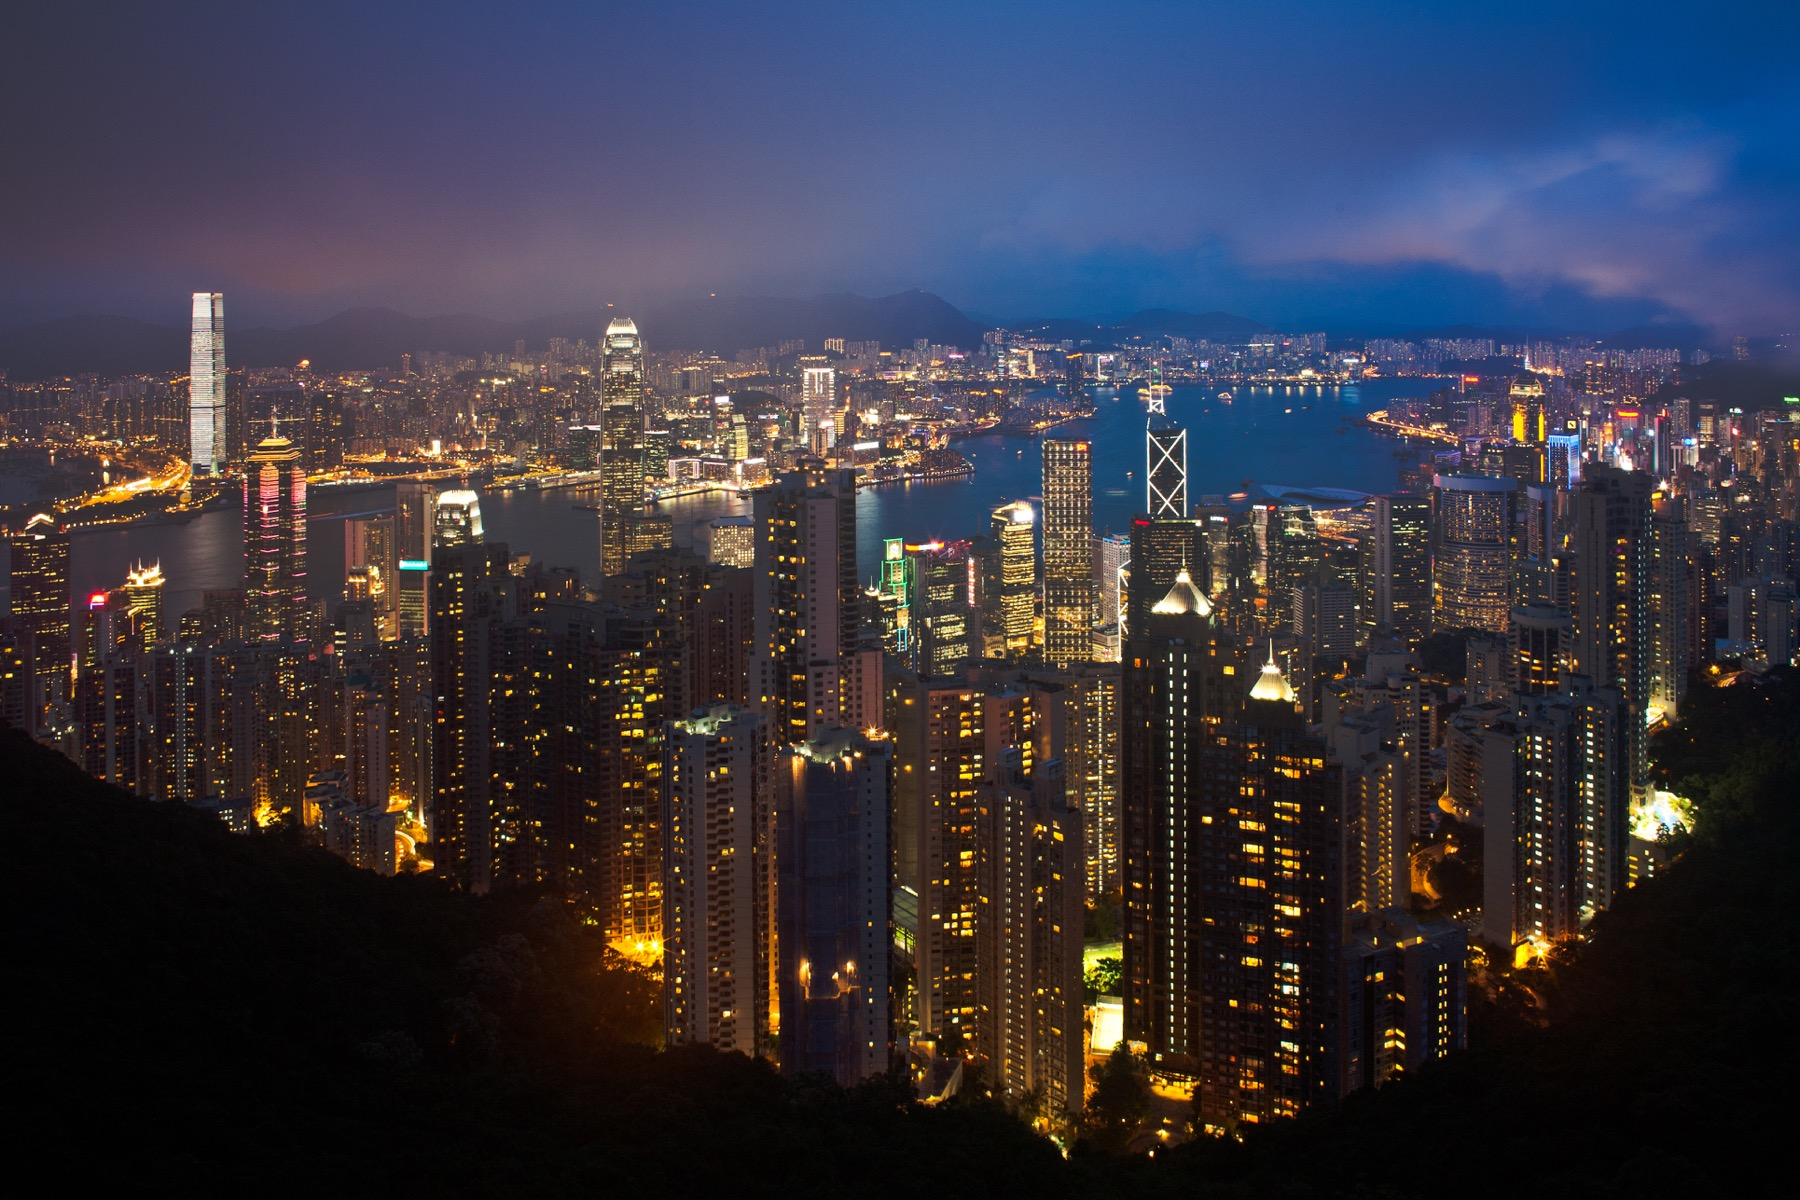 hong-kong-cityscape-at-night_BvMaGl_3fe-1